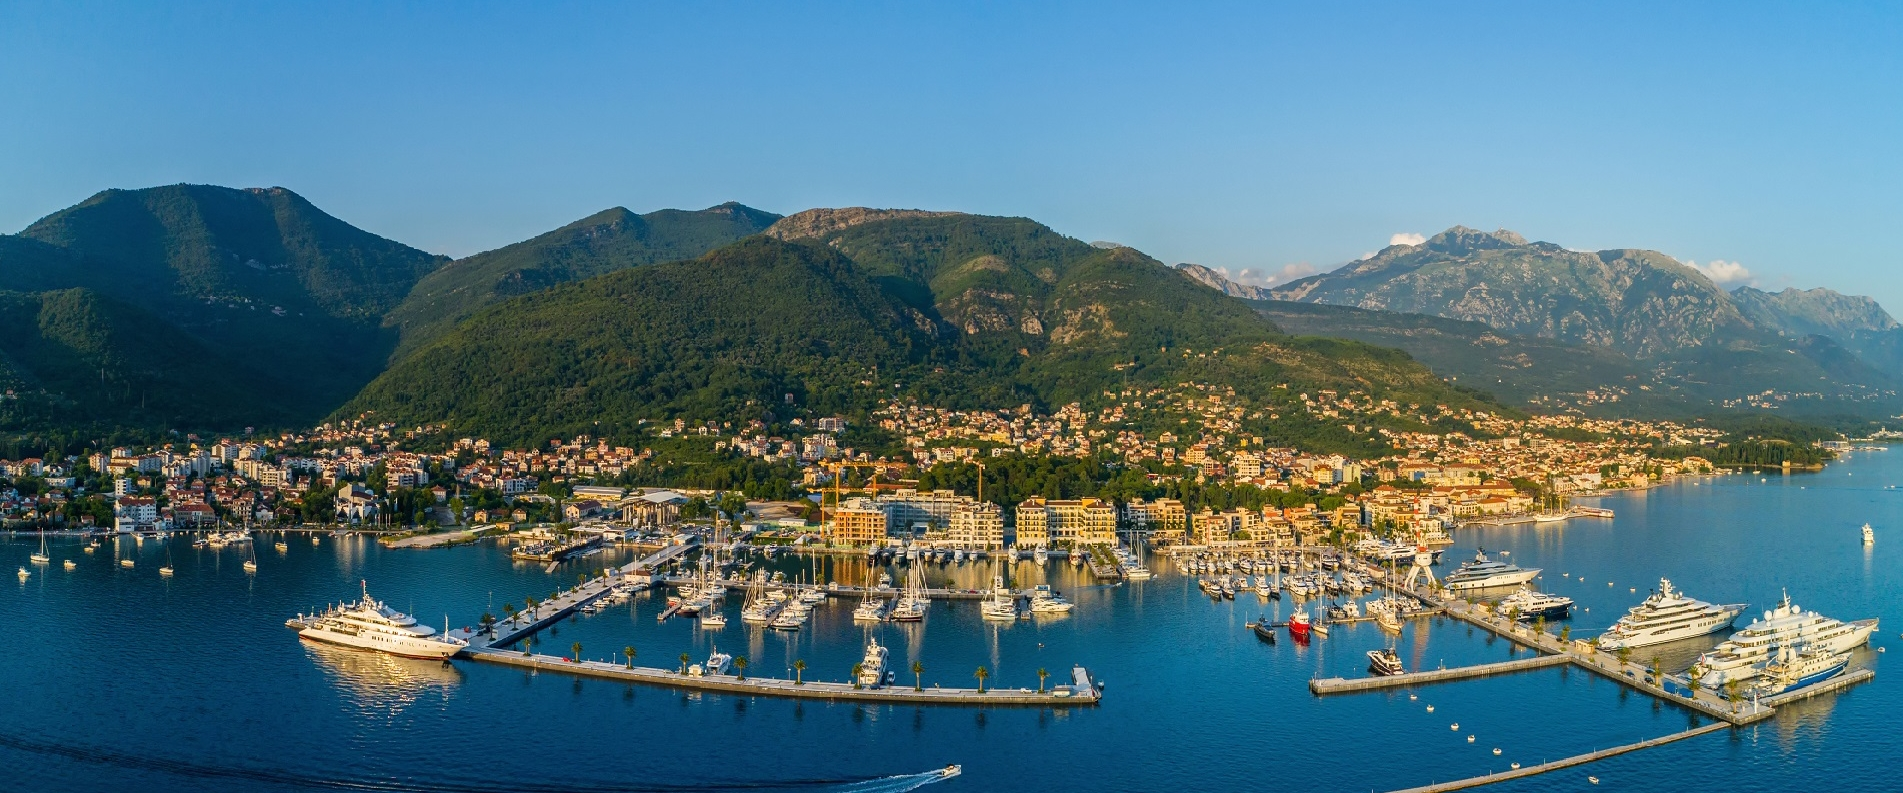 Places to visit in Tivat: everything Porto Montenegro can offer and much more